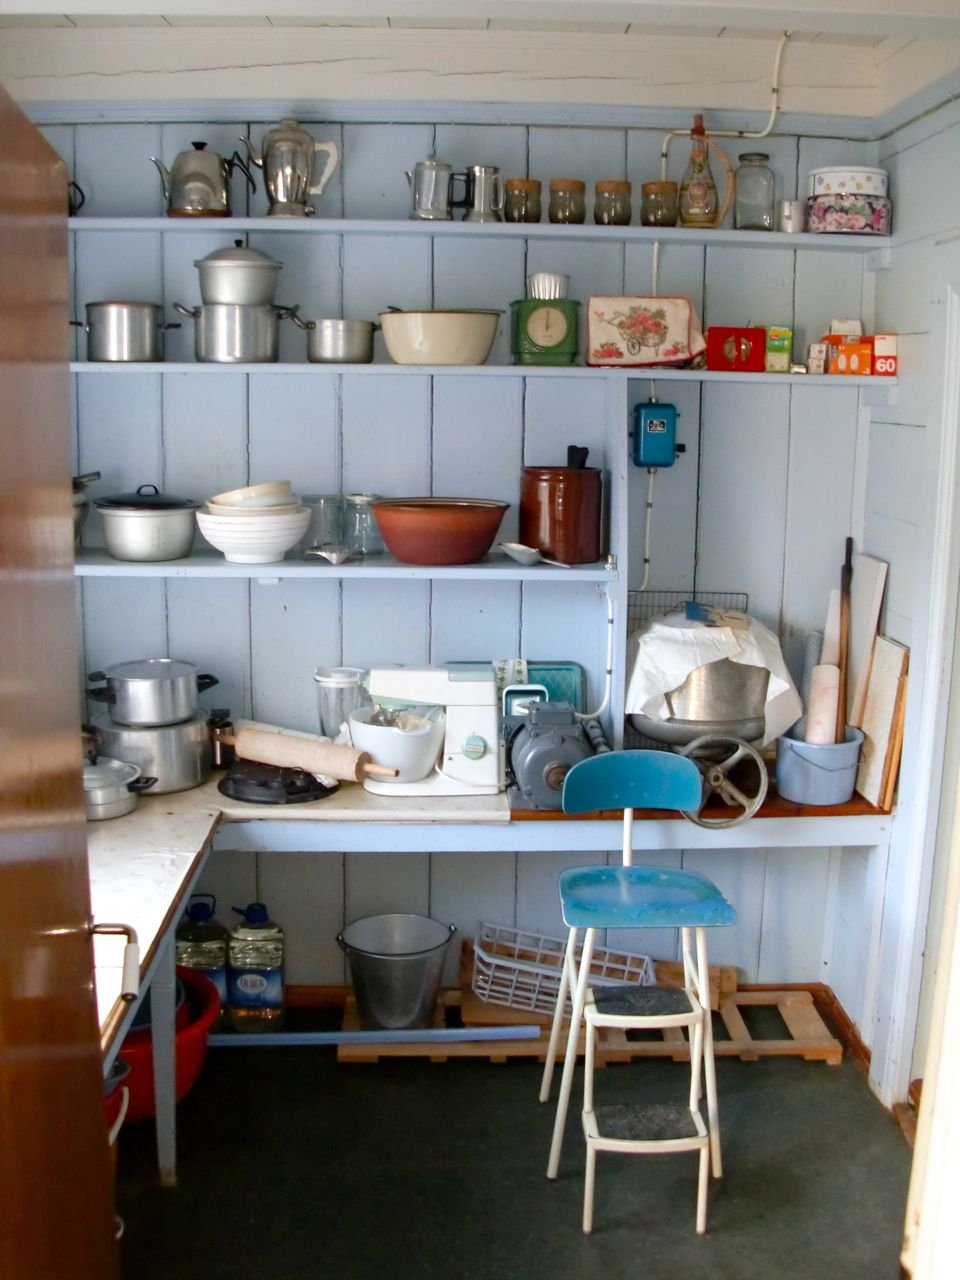 Farm house kitchen pantry | Home | Pinterest | Kitchen pantries ...